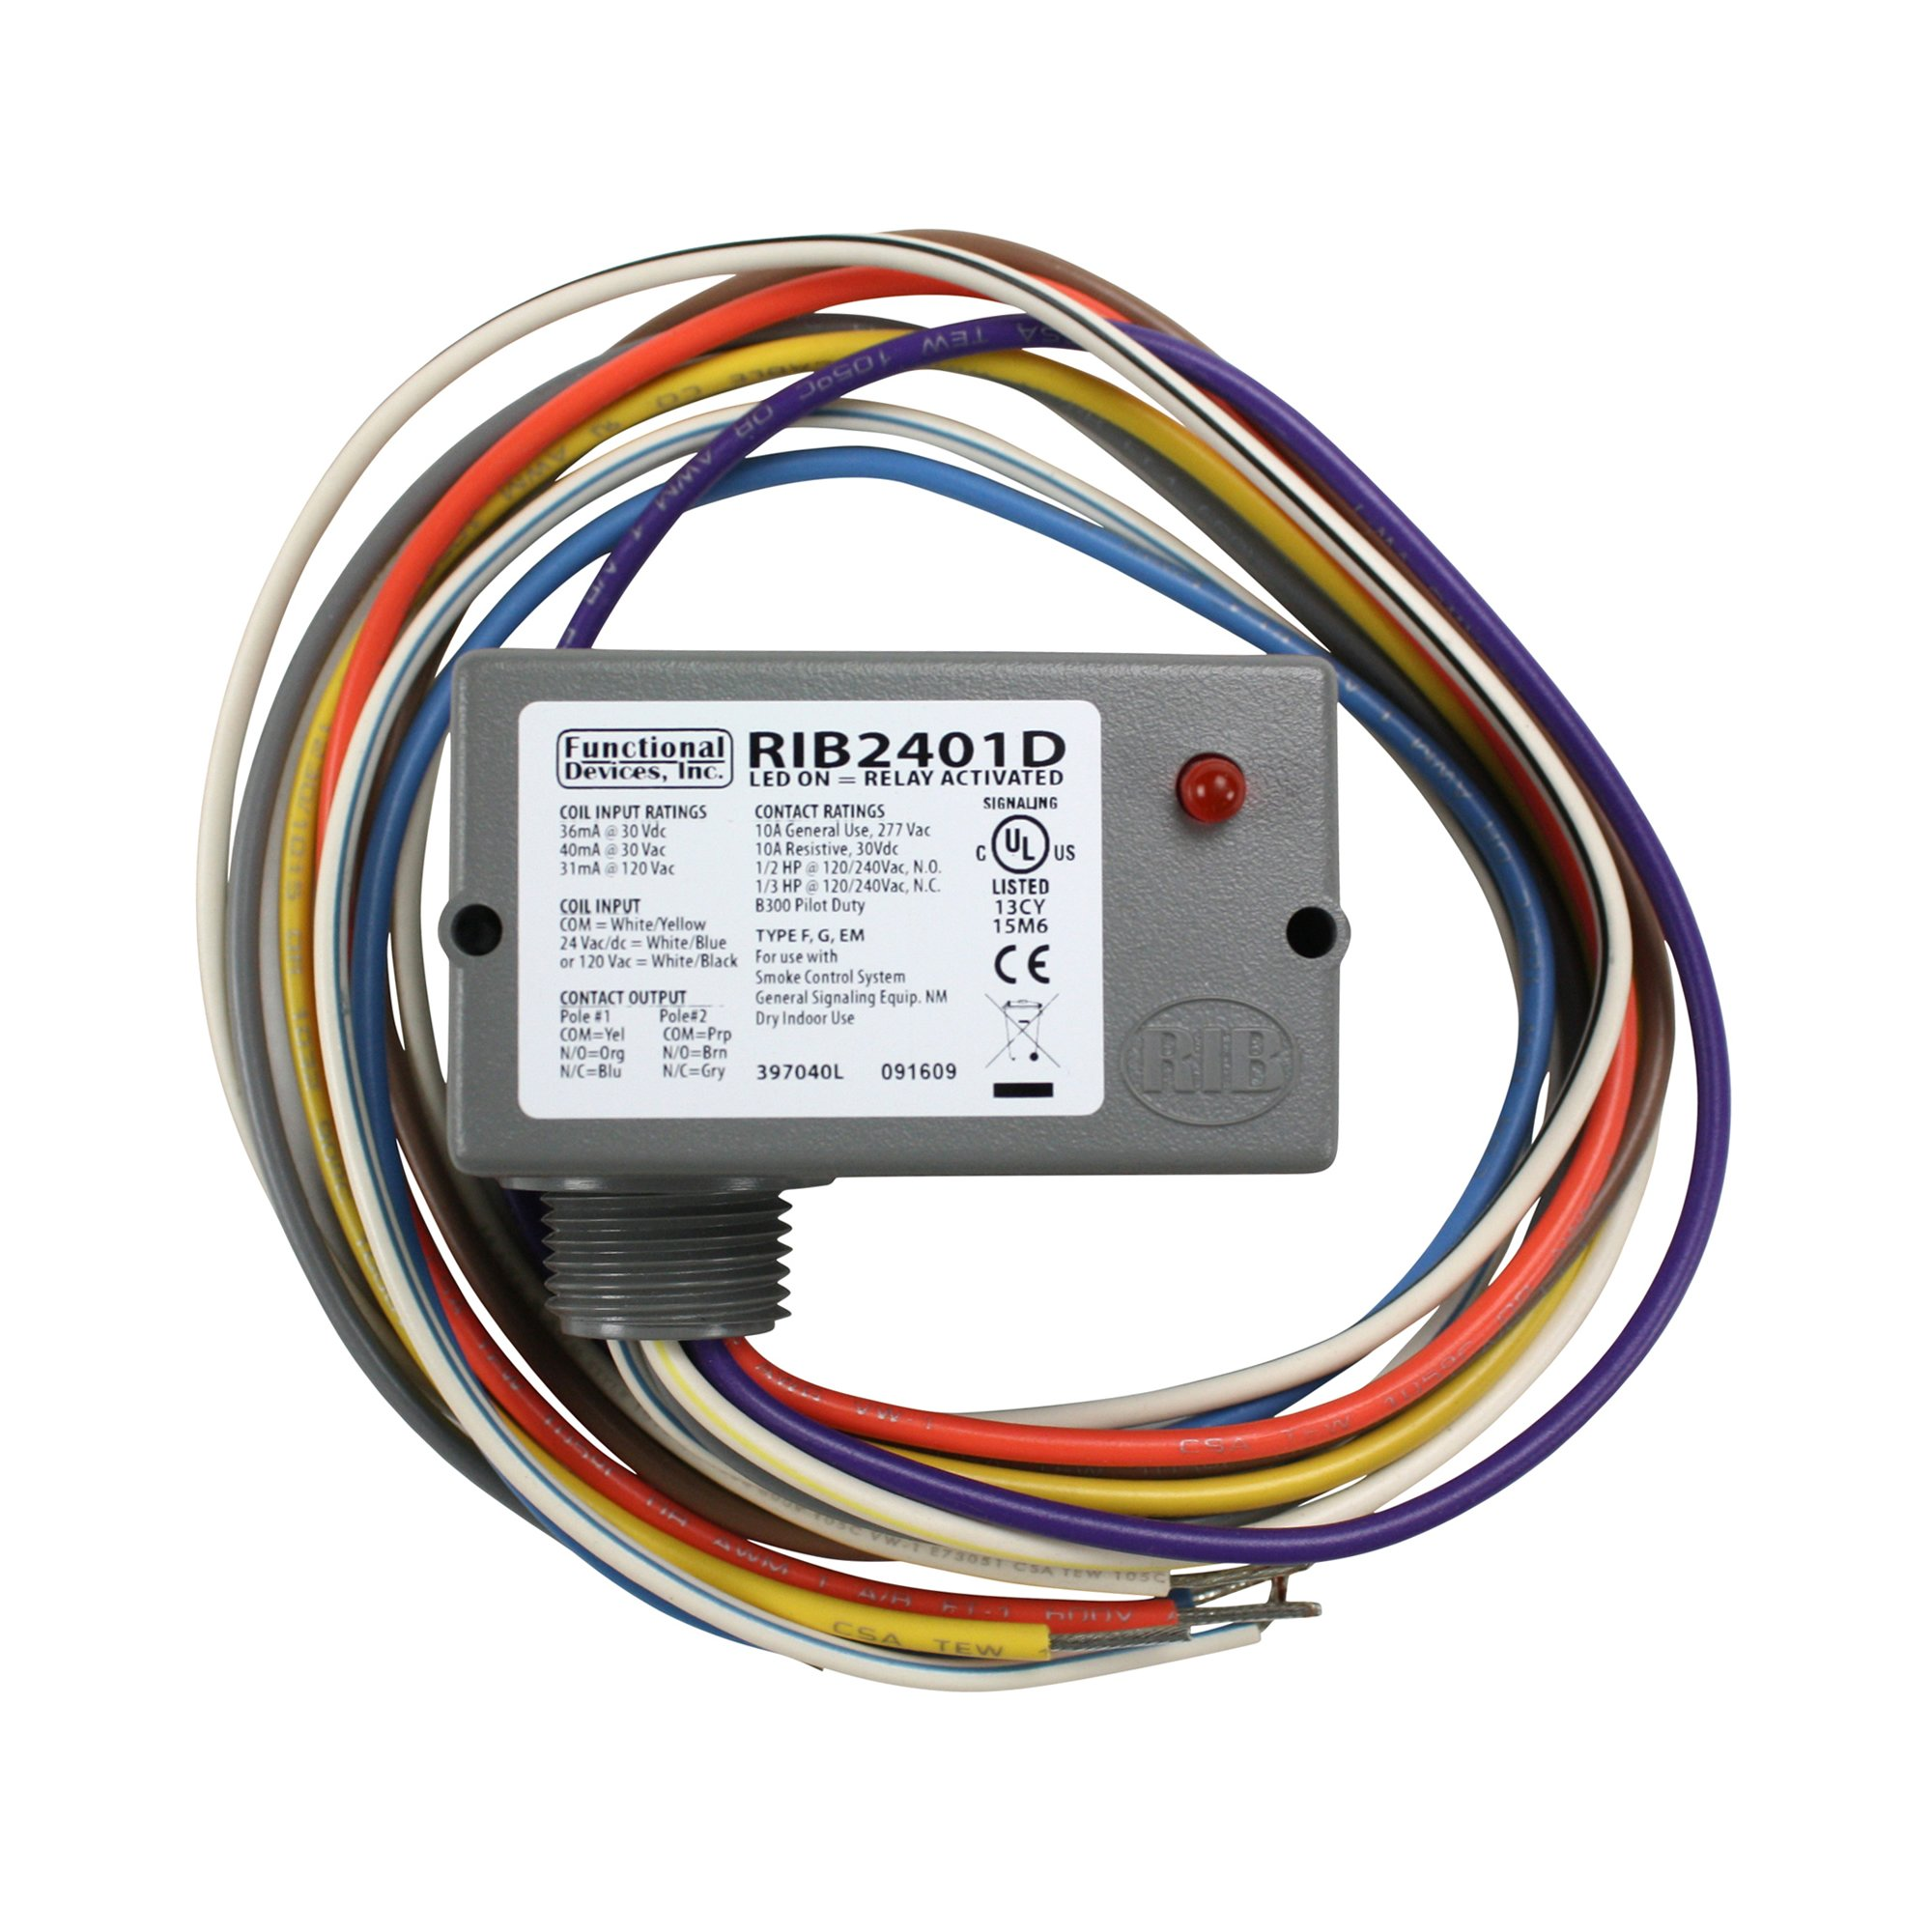 Best Rated In Electrical Relays Helpful Customer Reviews Spa Air Switch Dpdt Wiring Diagram Functional Devices Rib2401d Enclosed Pilot Relay 10 Amp With 24 Vac Dc